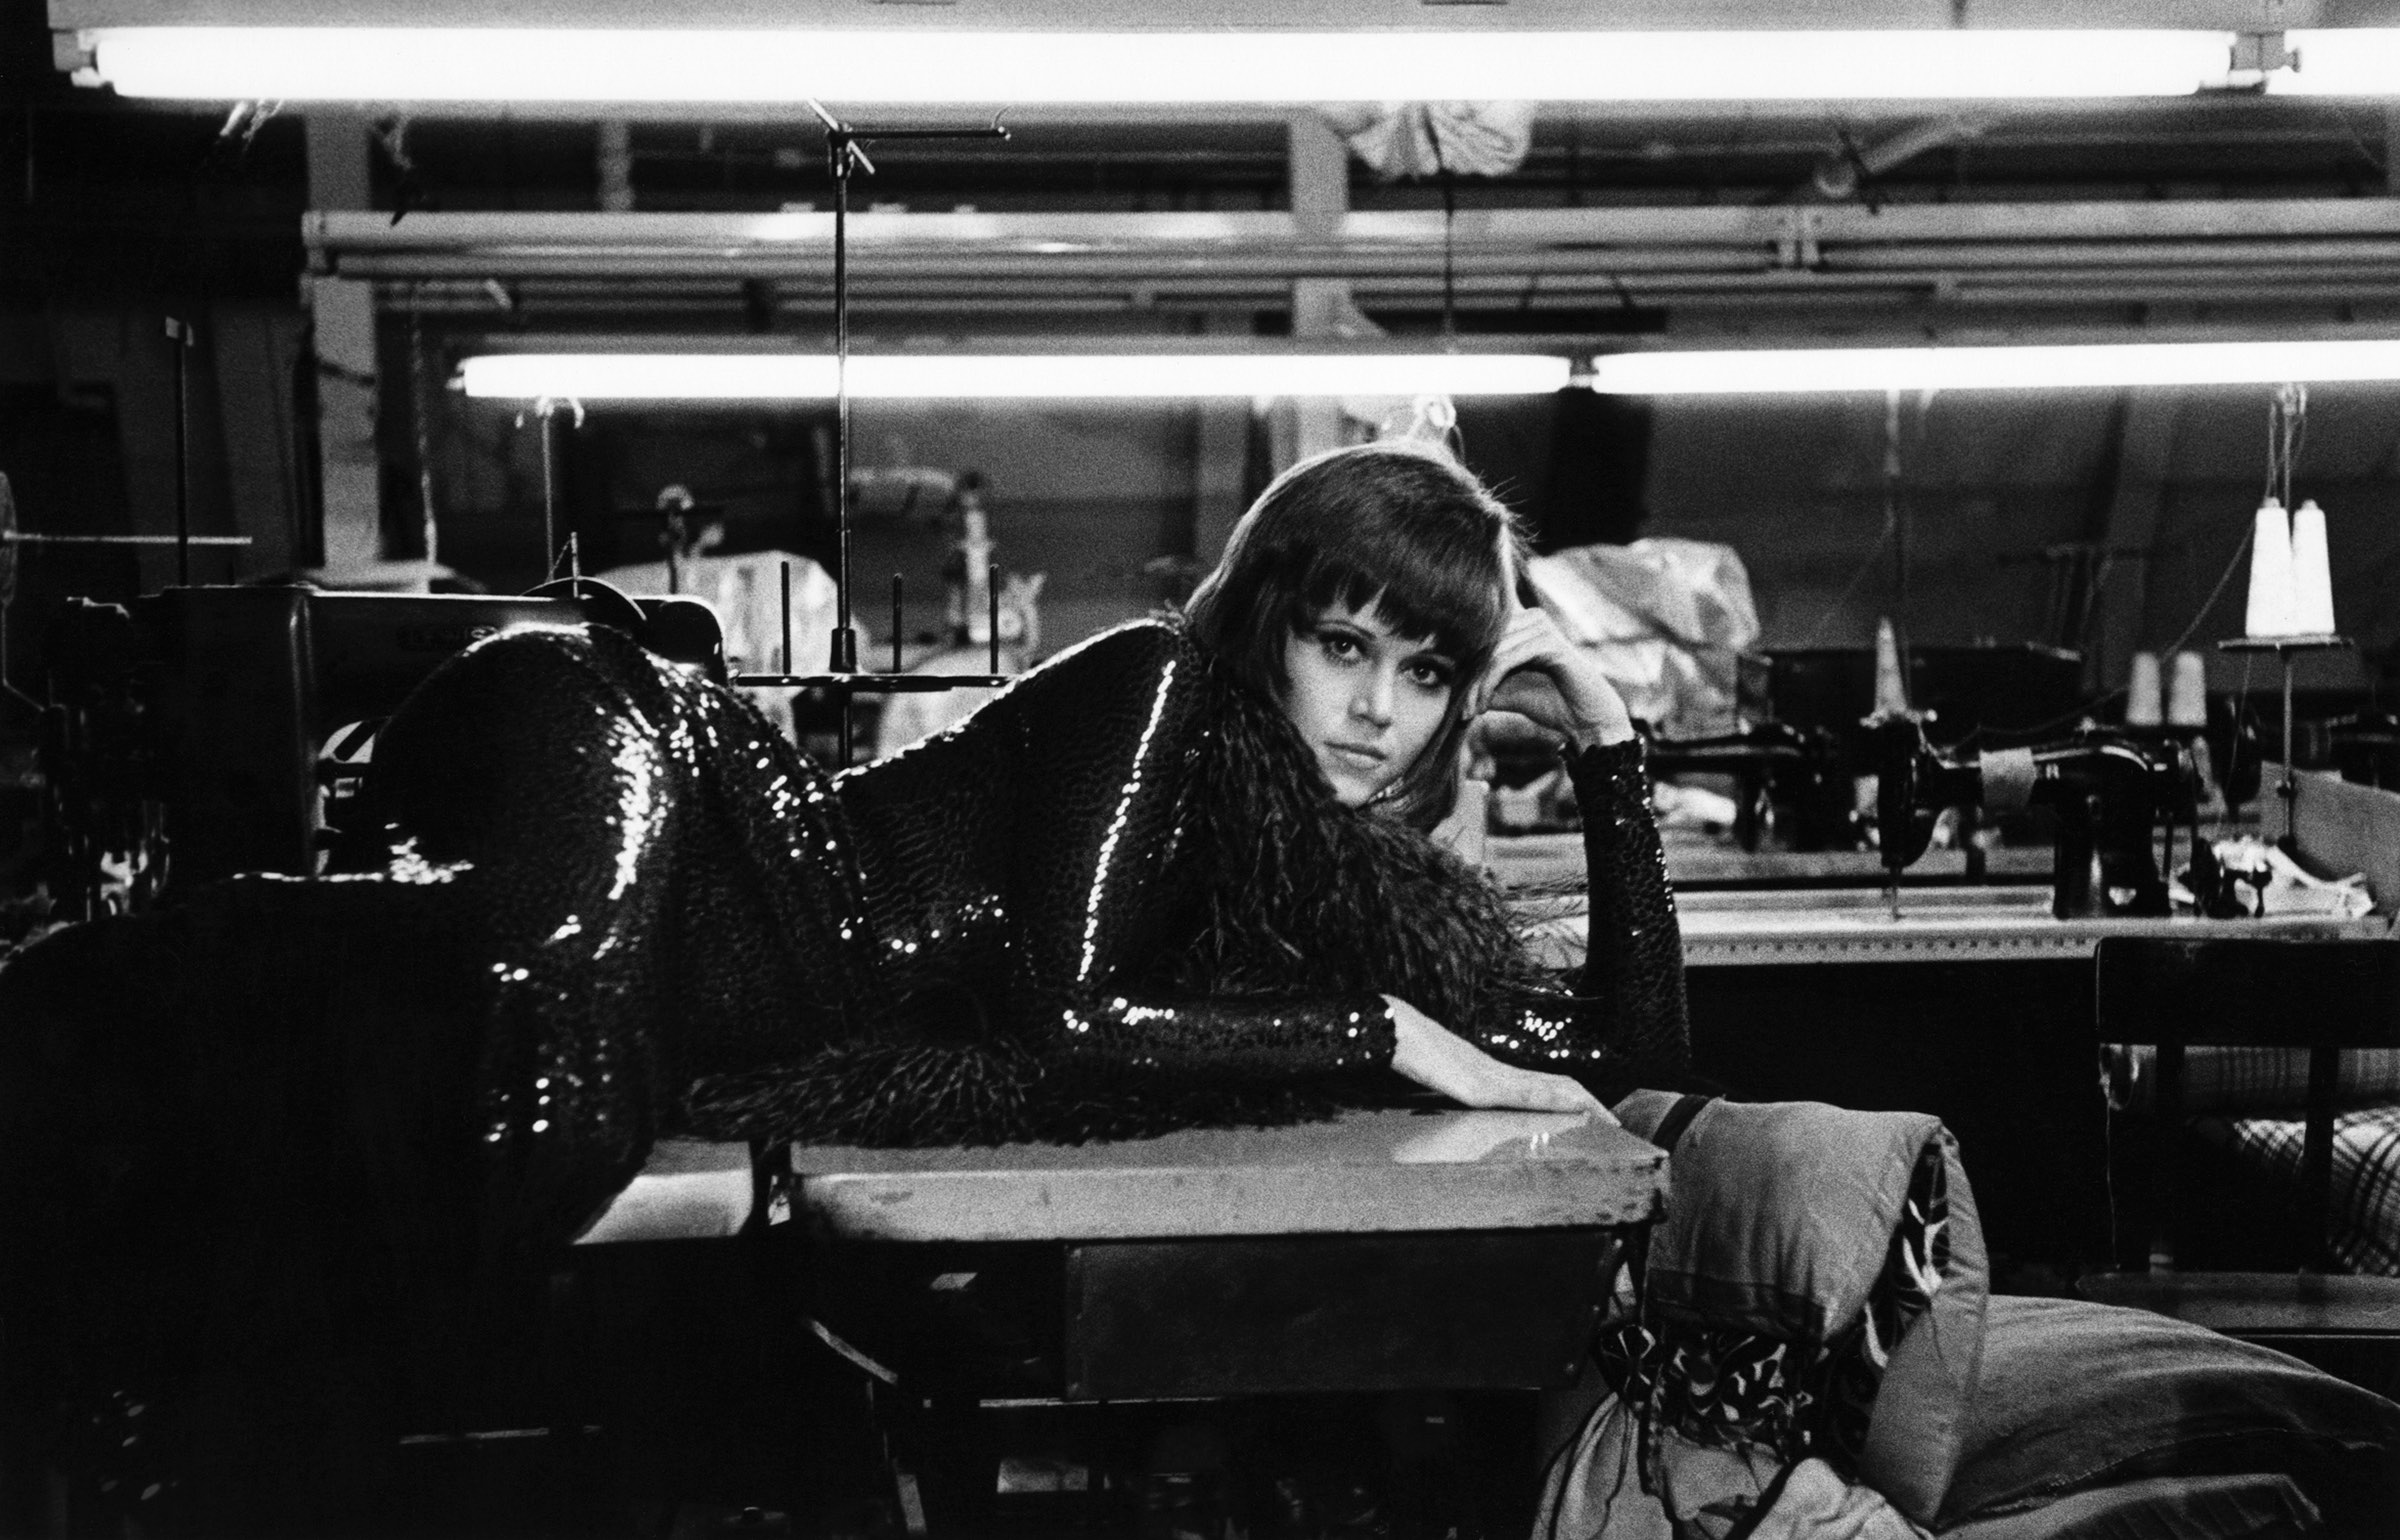 Jane Fonda resting on the NYC location of Klute, 1970